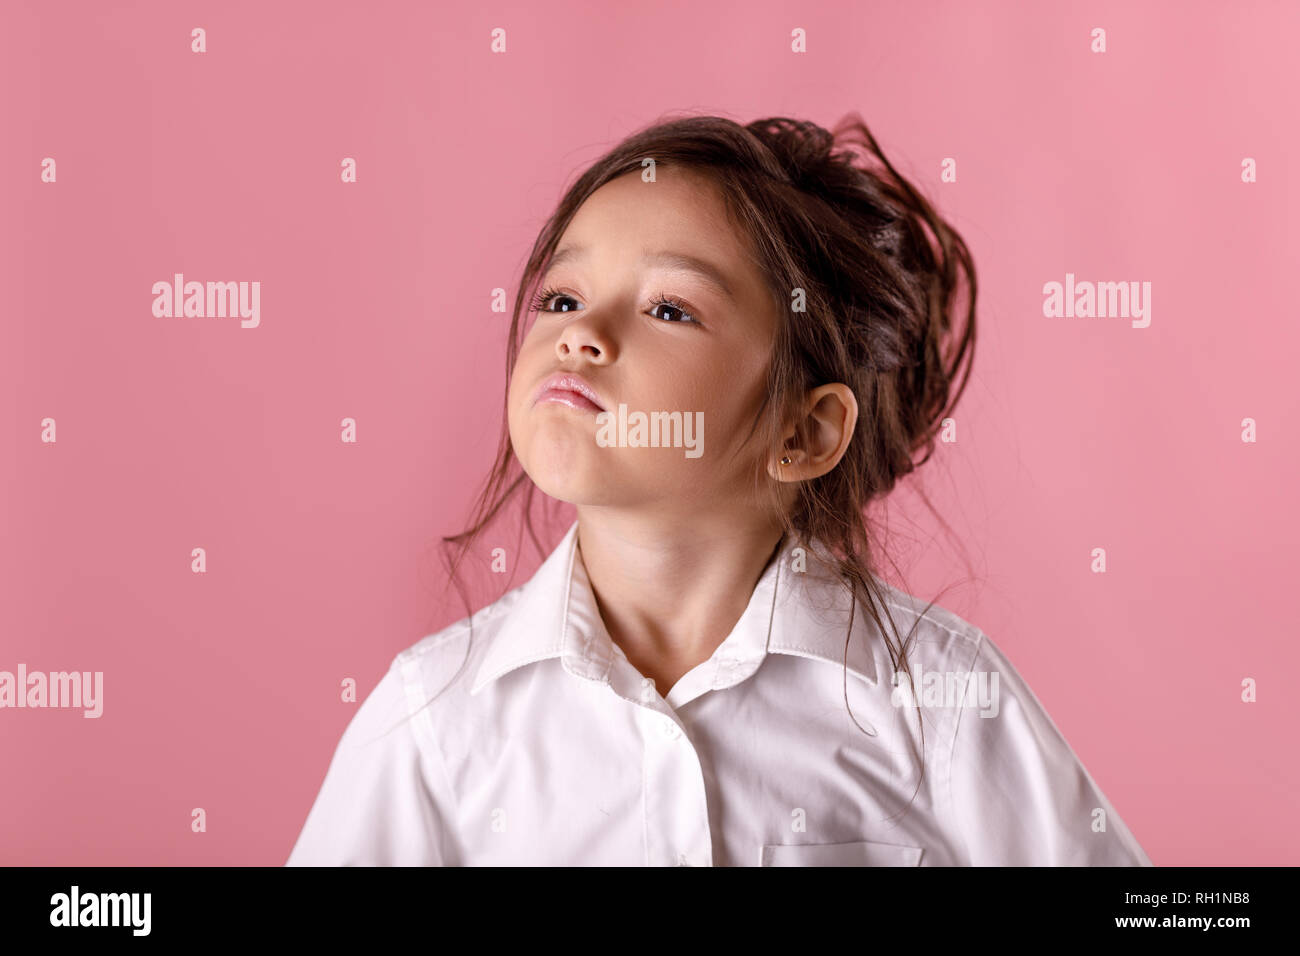 Cute proud little girl in white shirt with hairstyle looking to camera on pink background i am the best human emotions